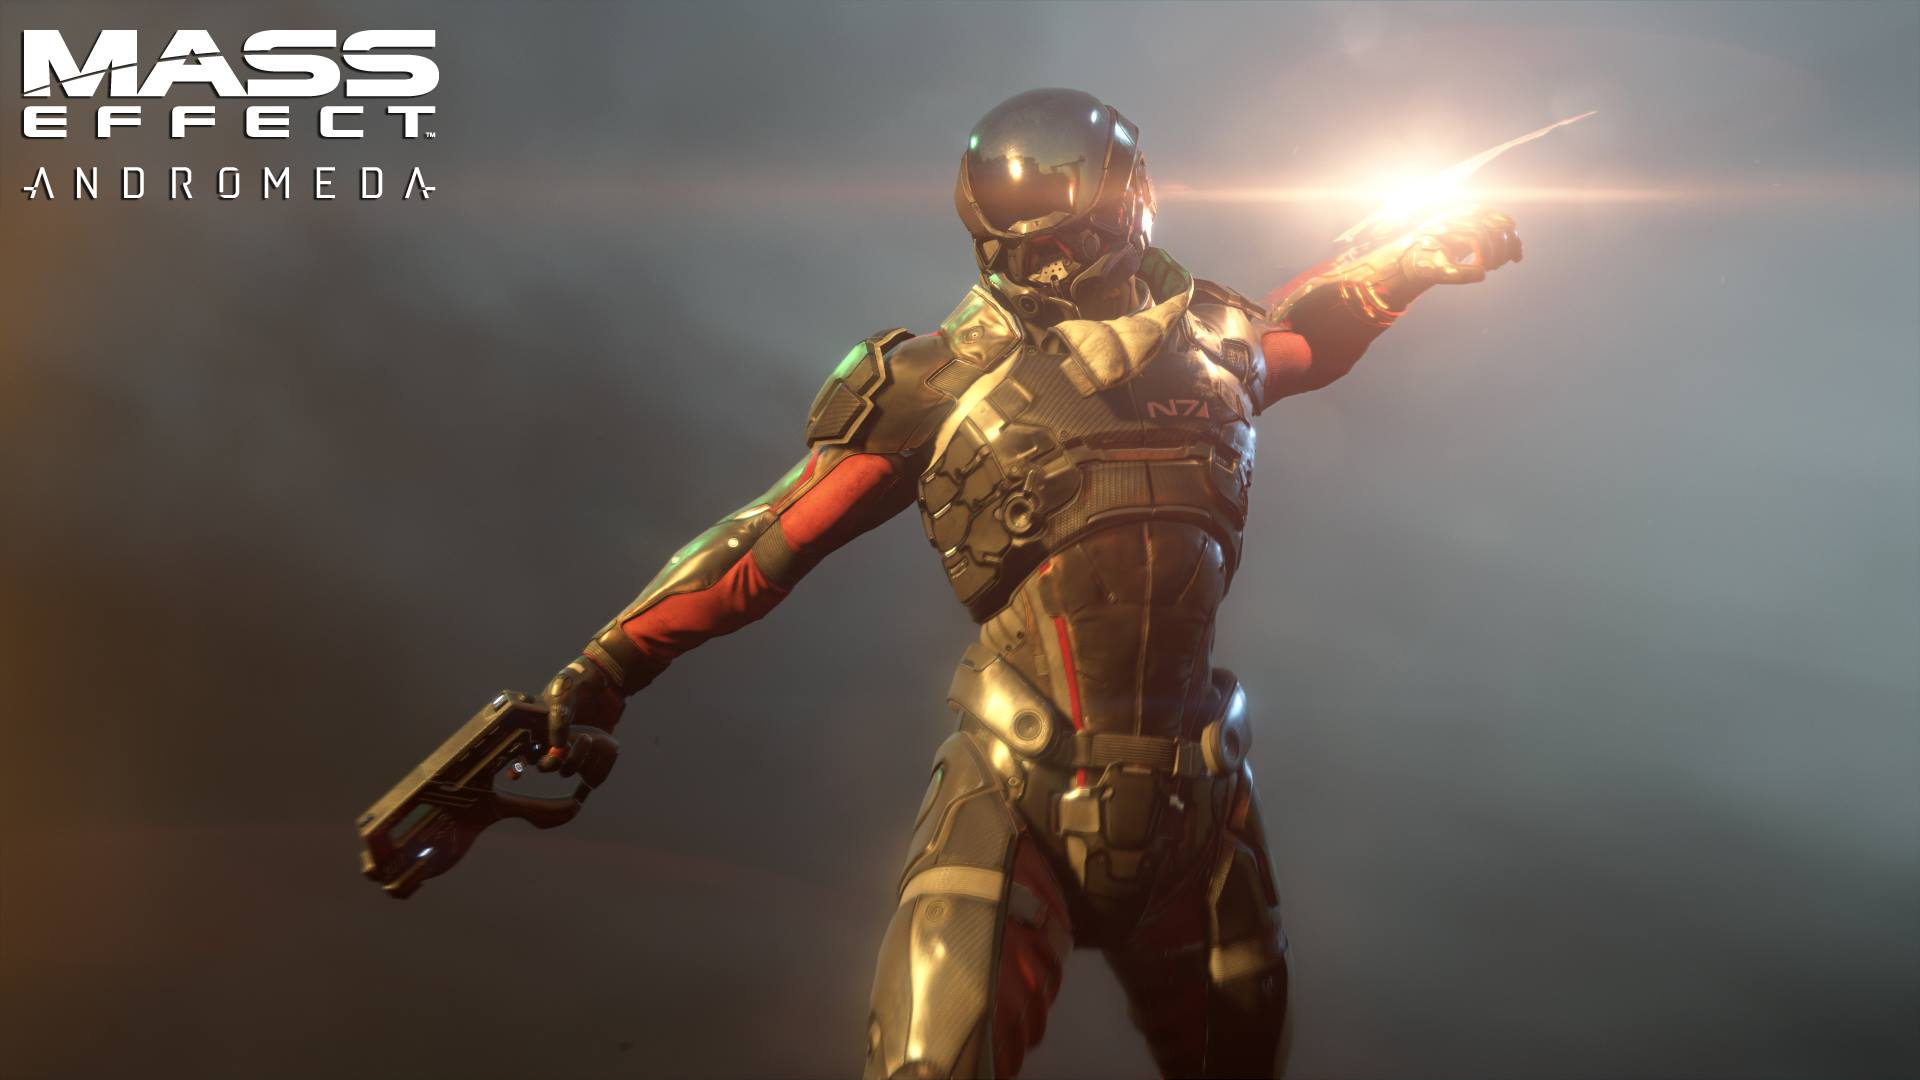 Mass Effect Andromeda Pushed Back